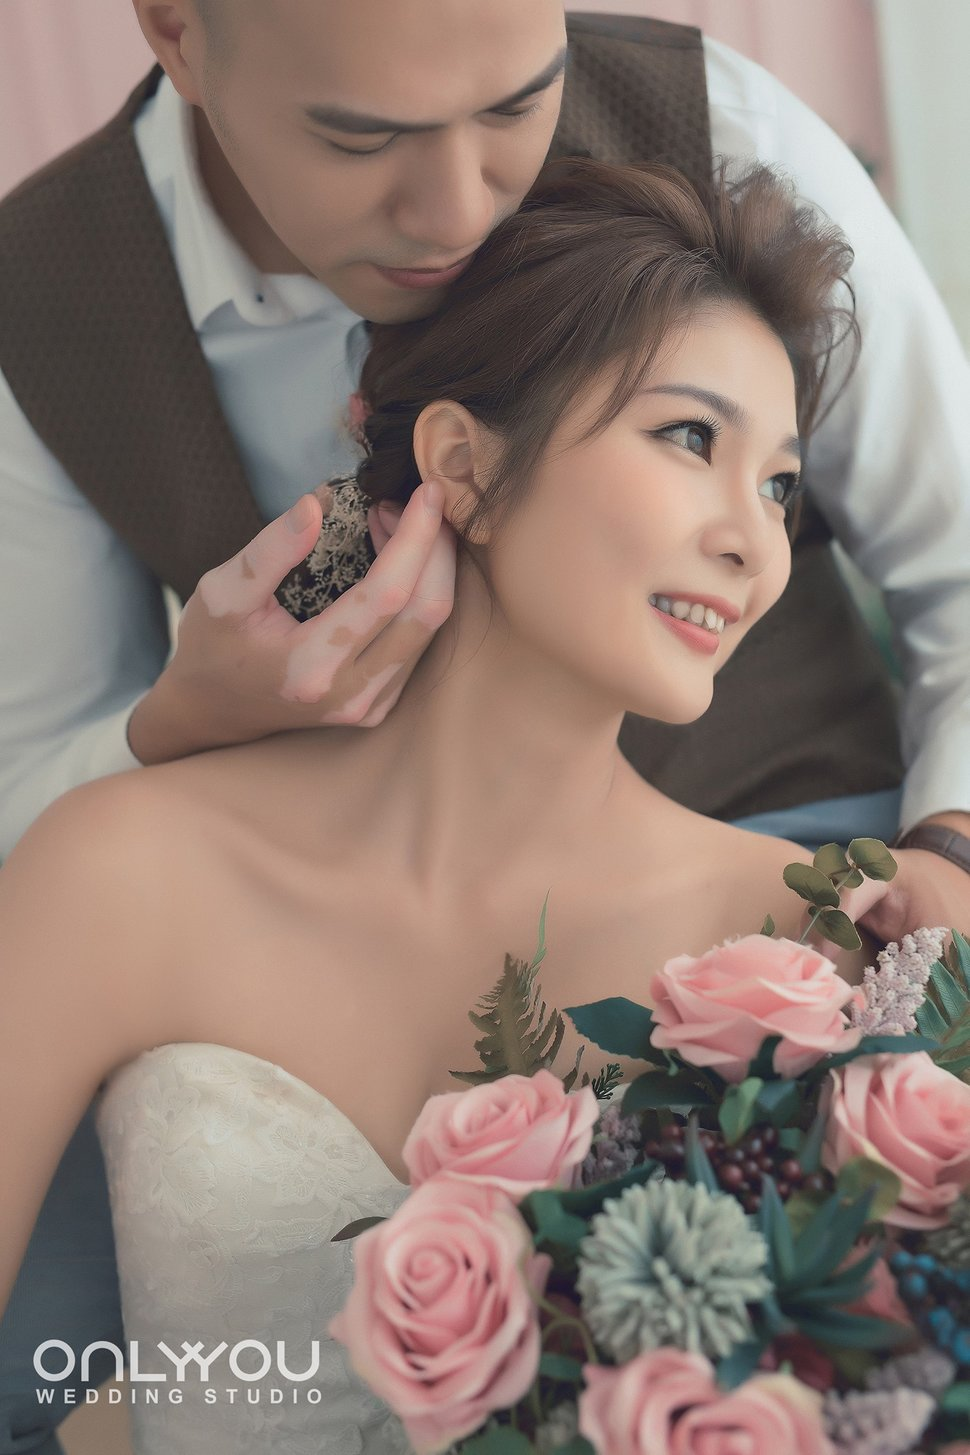 69184724_2333339810054985_157960208428040192_o - ONLY YOU 唯你婚紗攝影《結婚吧》